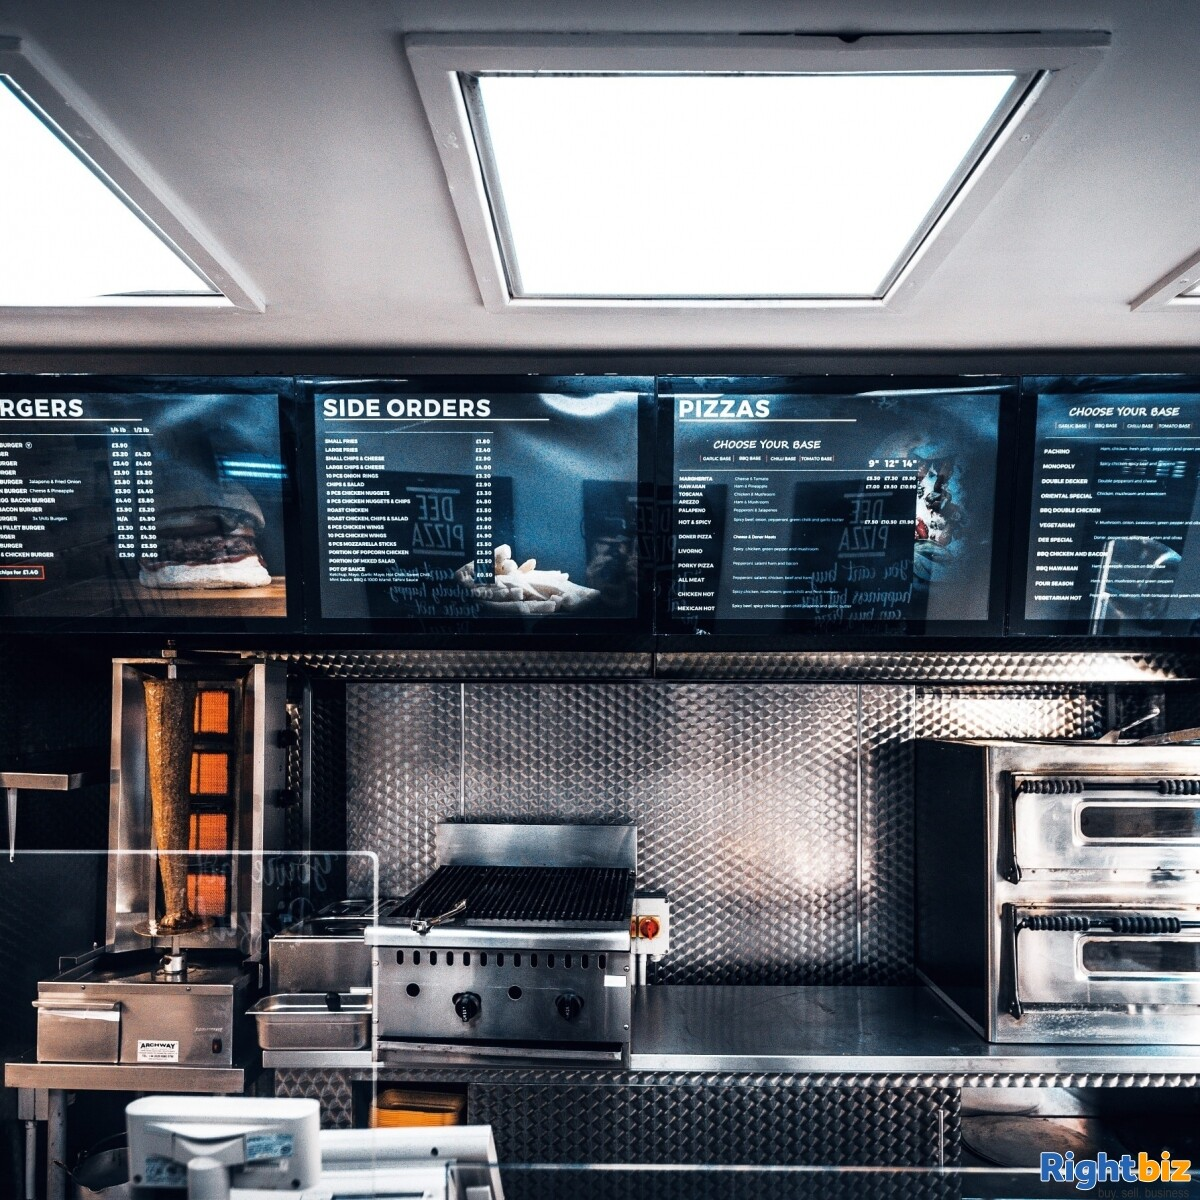 Fully Equipped Food Takeaway for Sale in LLangollen Town Centre, Refubrished and Decorated - Image 3